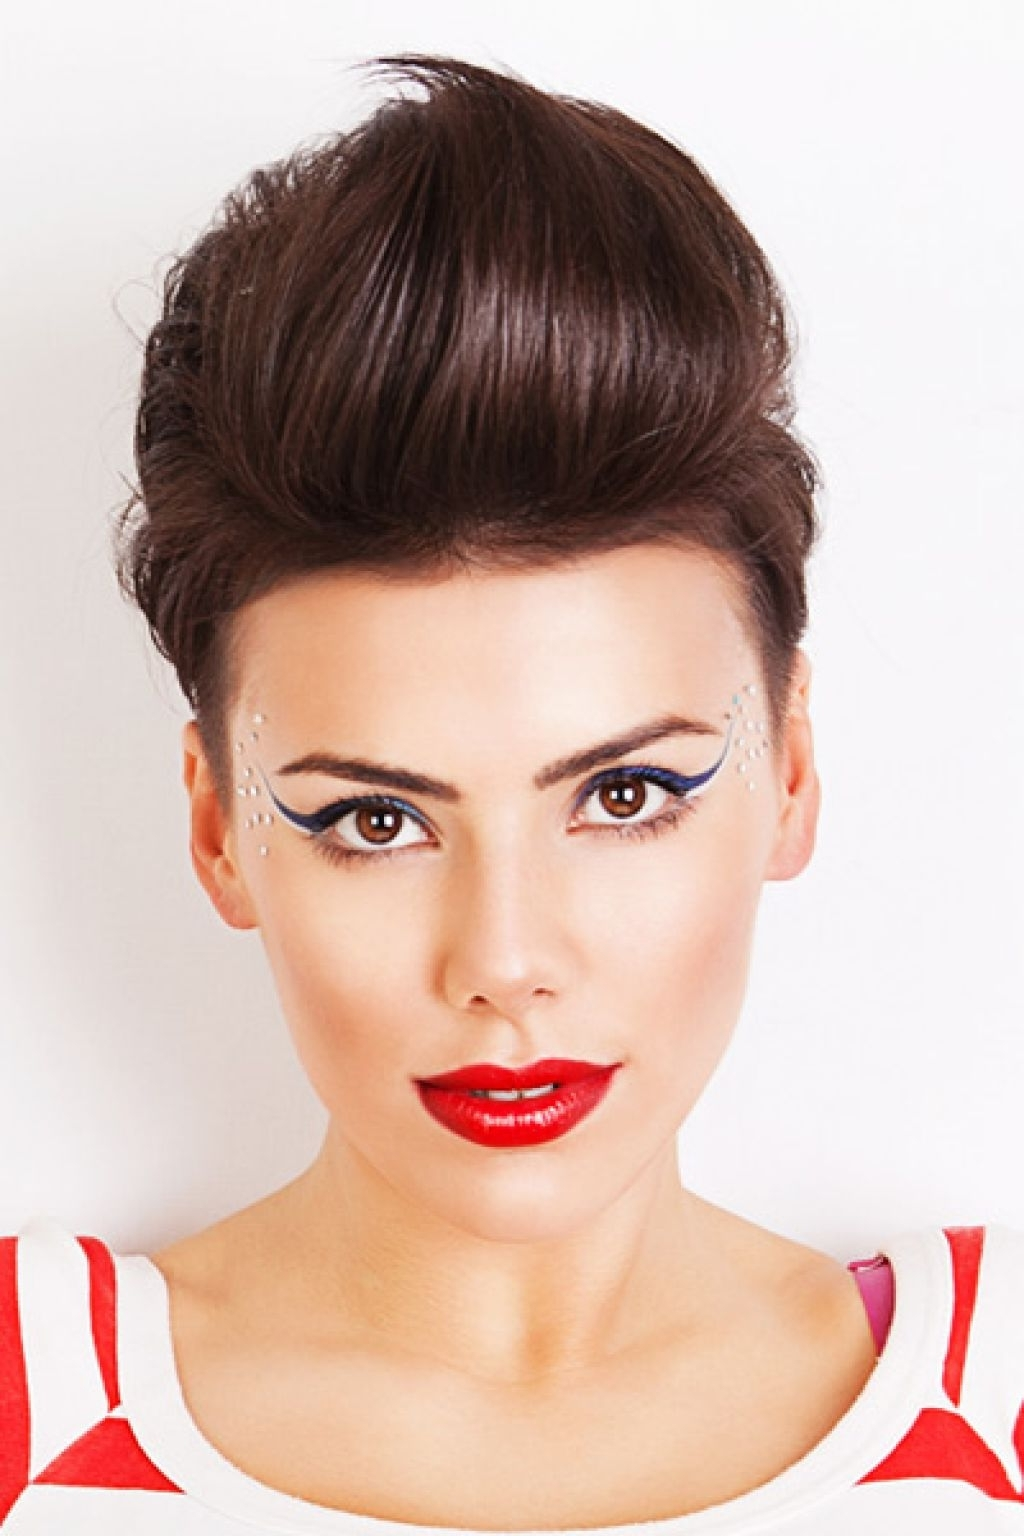 Daring Women Quiff Hairstyles To Make A Statement (View 4 of 15)